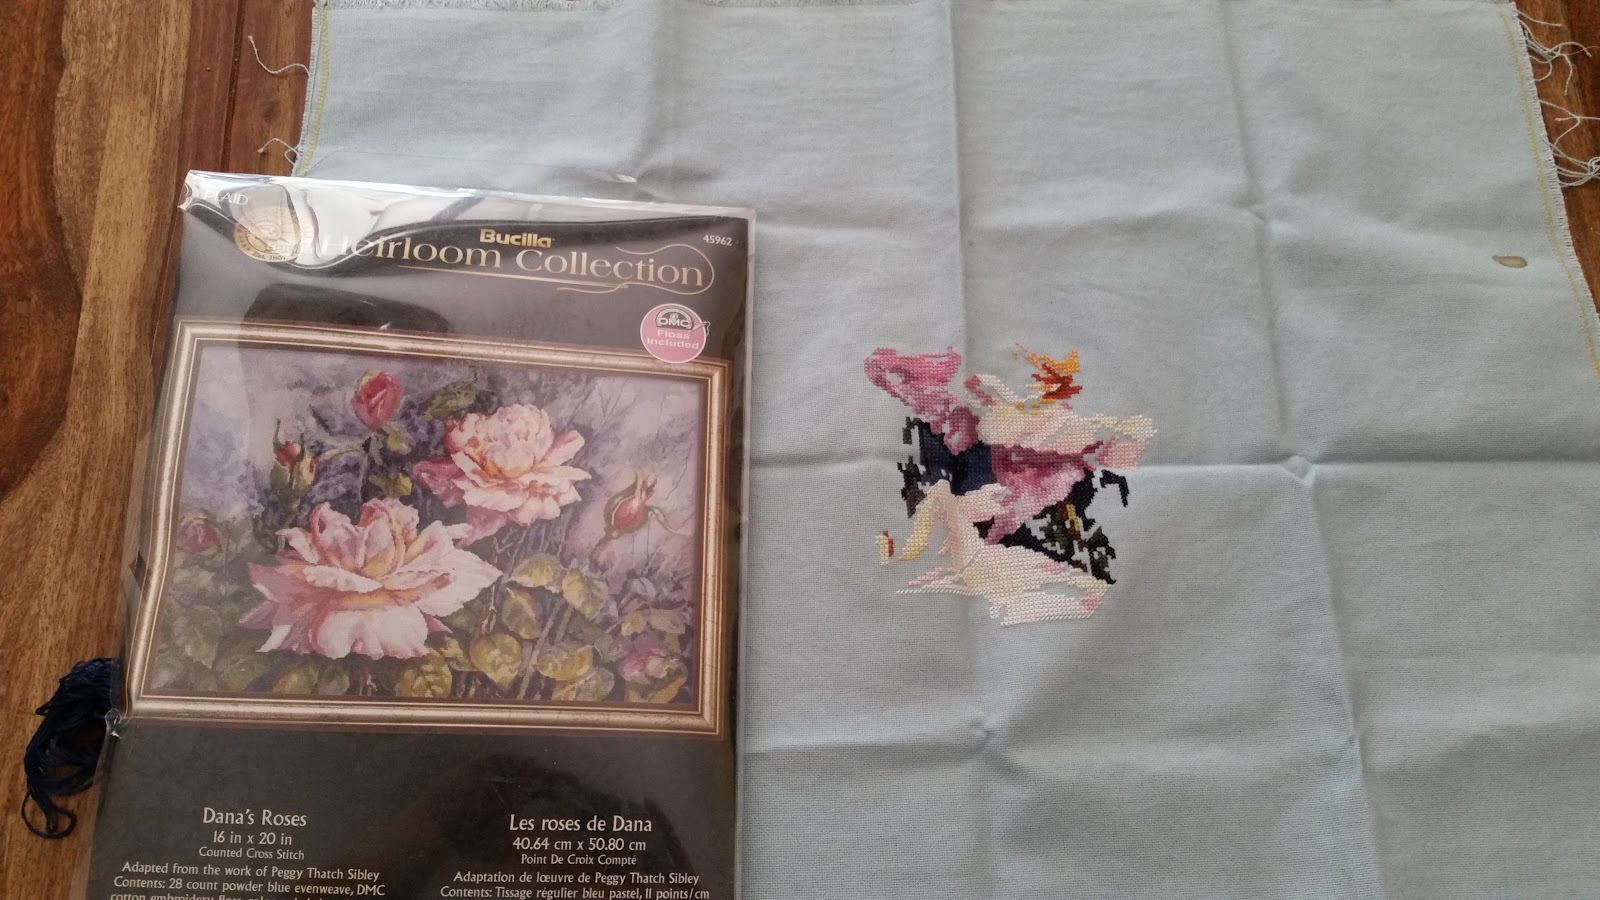 Blue Star Stitcher September 2016 Someday Pink Floral Embroidery Top I Loved The Design Though So Bought It With Best Of Intentions To Finish Sighsomeday